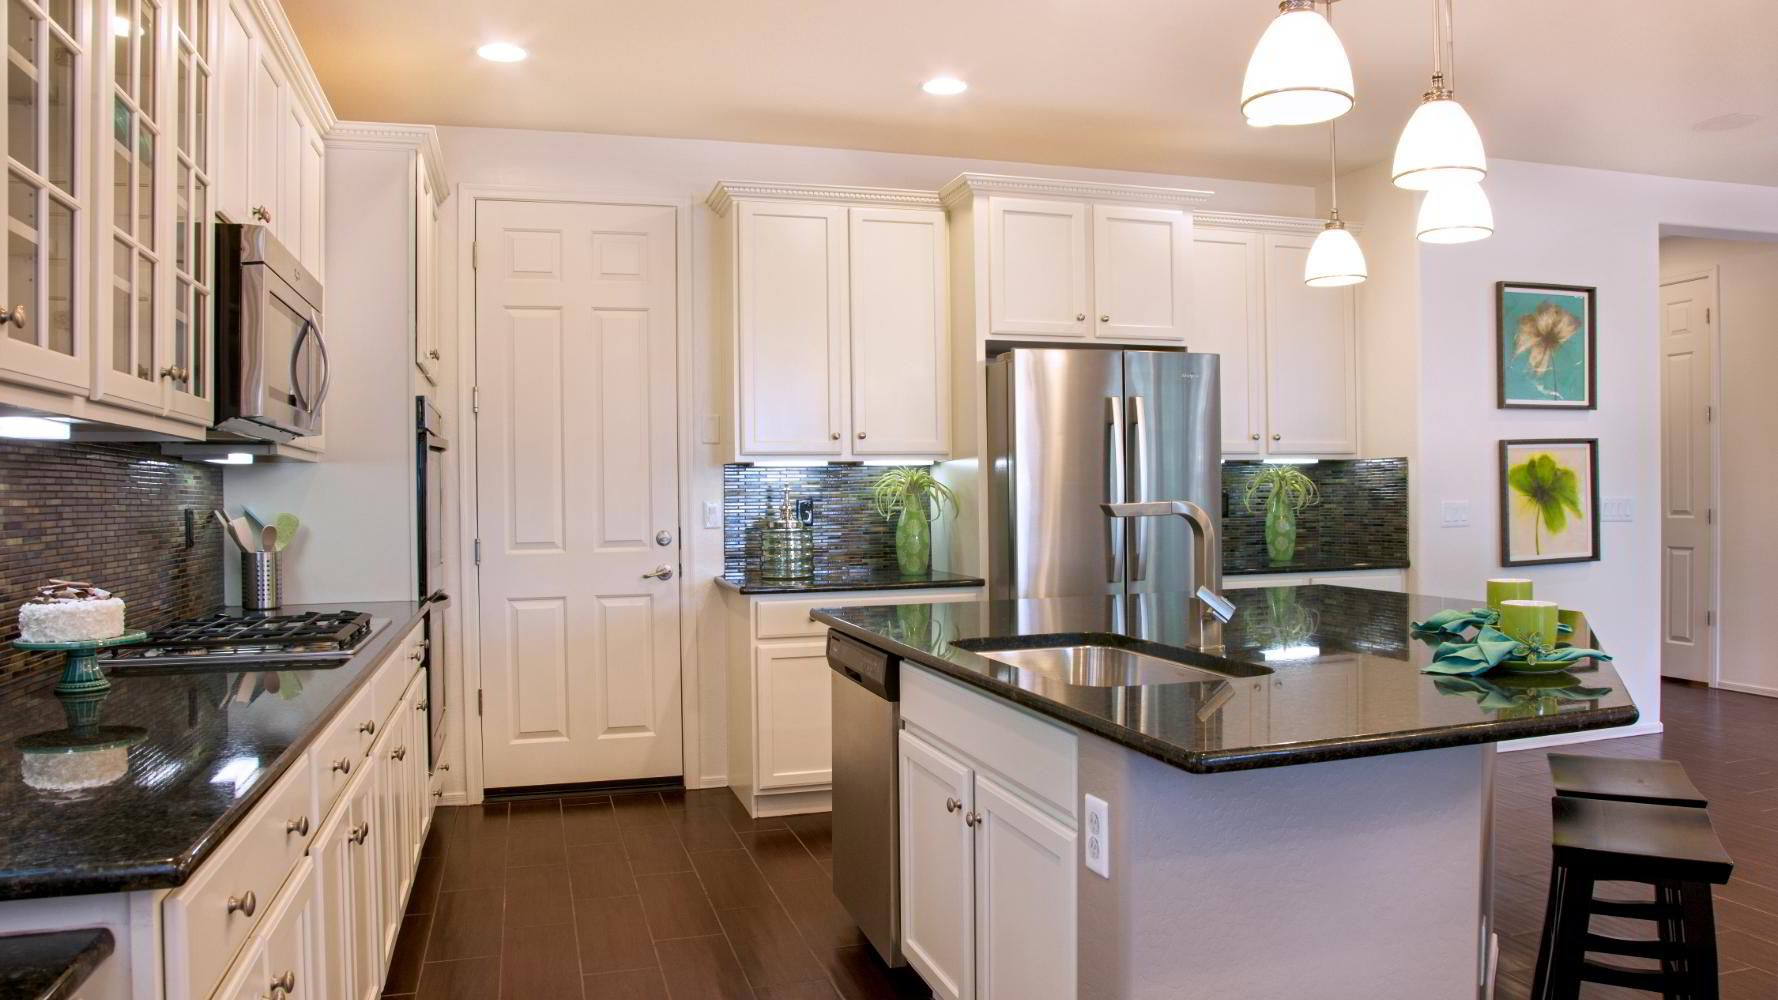 Sweet kitchens white cabinets offwhite u white washed too